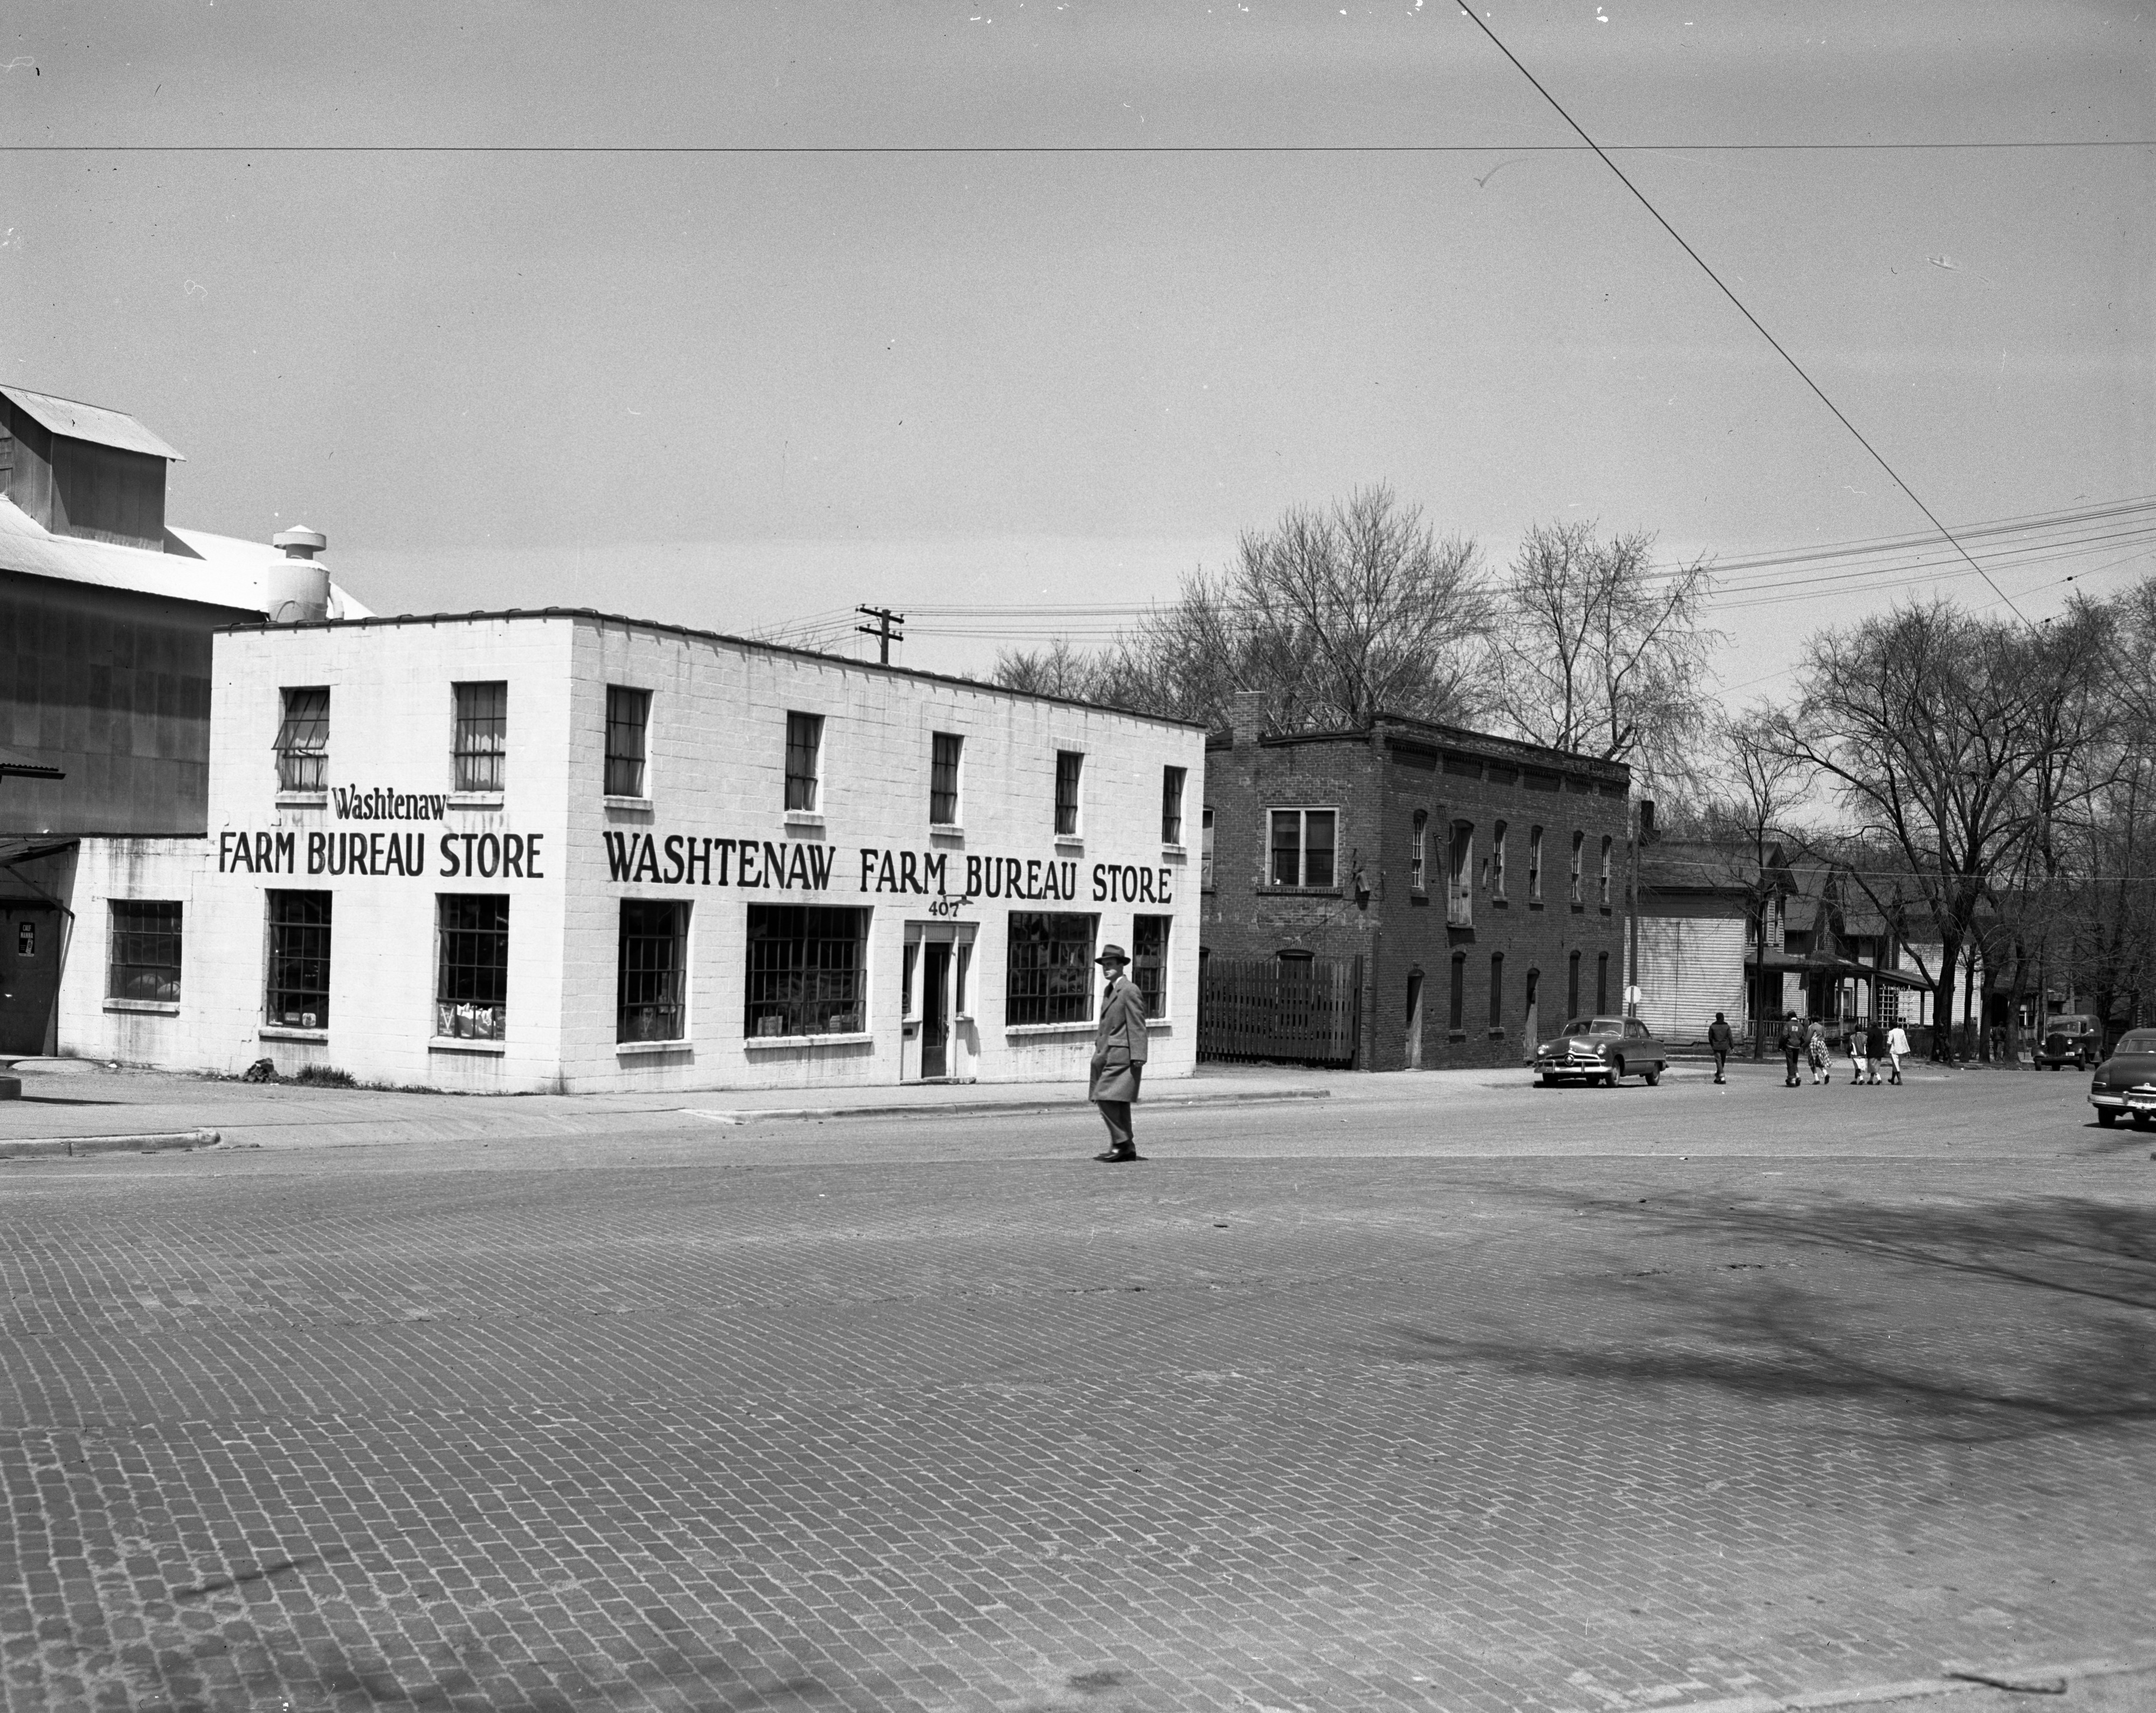 Farm Bureau Store on N. 5th Avenue (west side of street just north of Detroit St.), May 1950 image